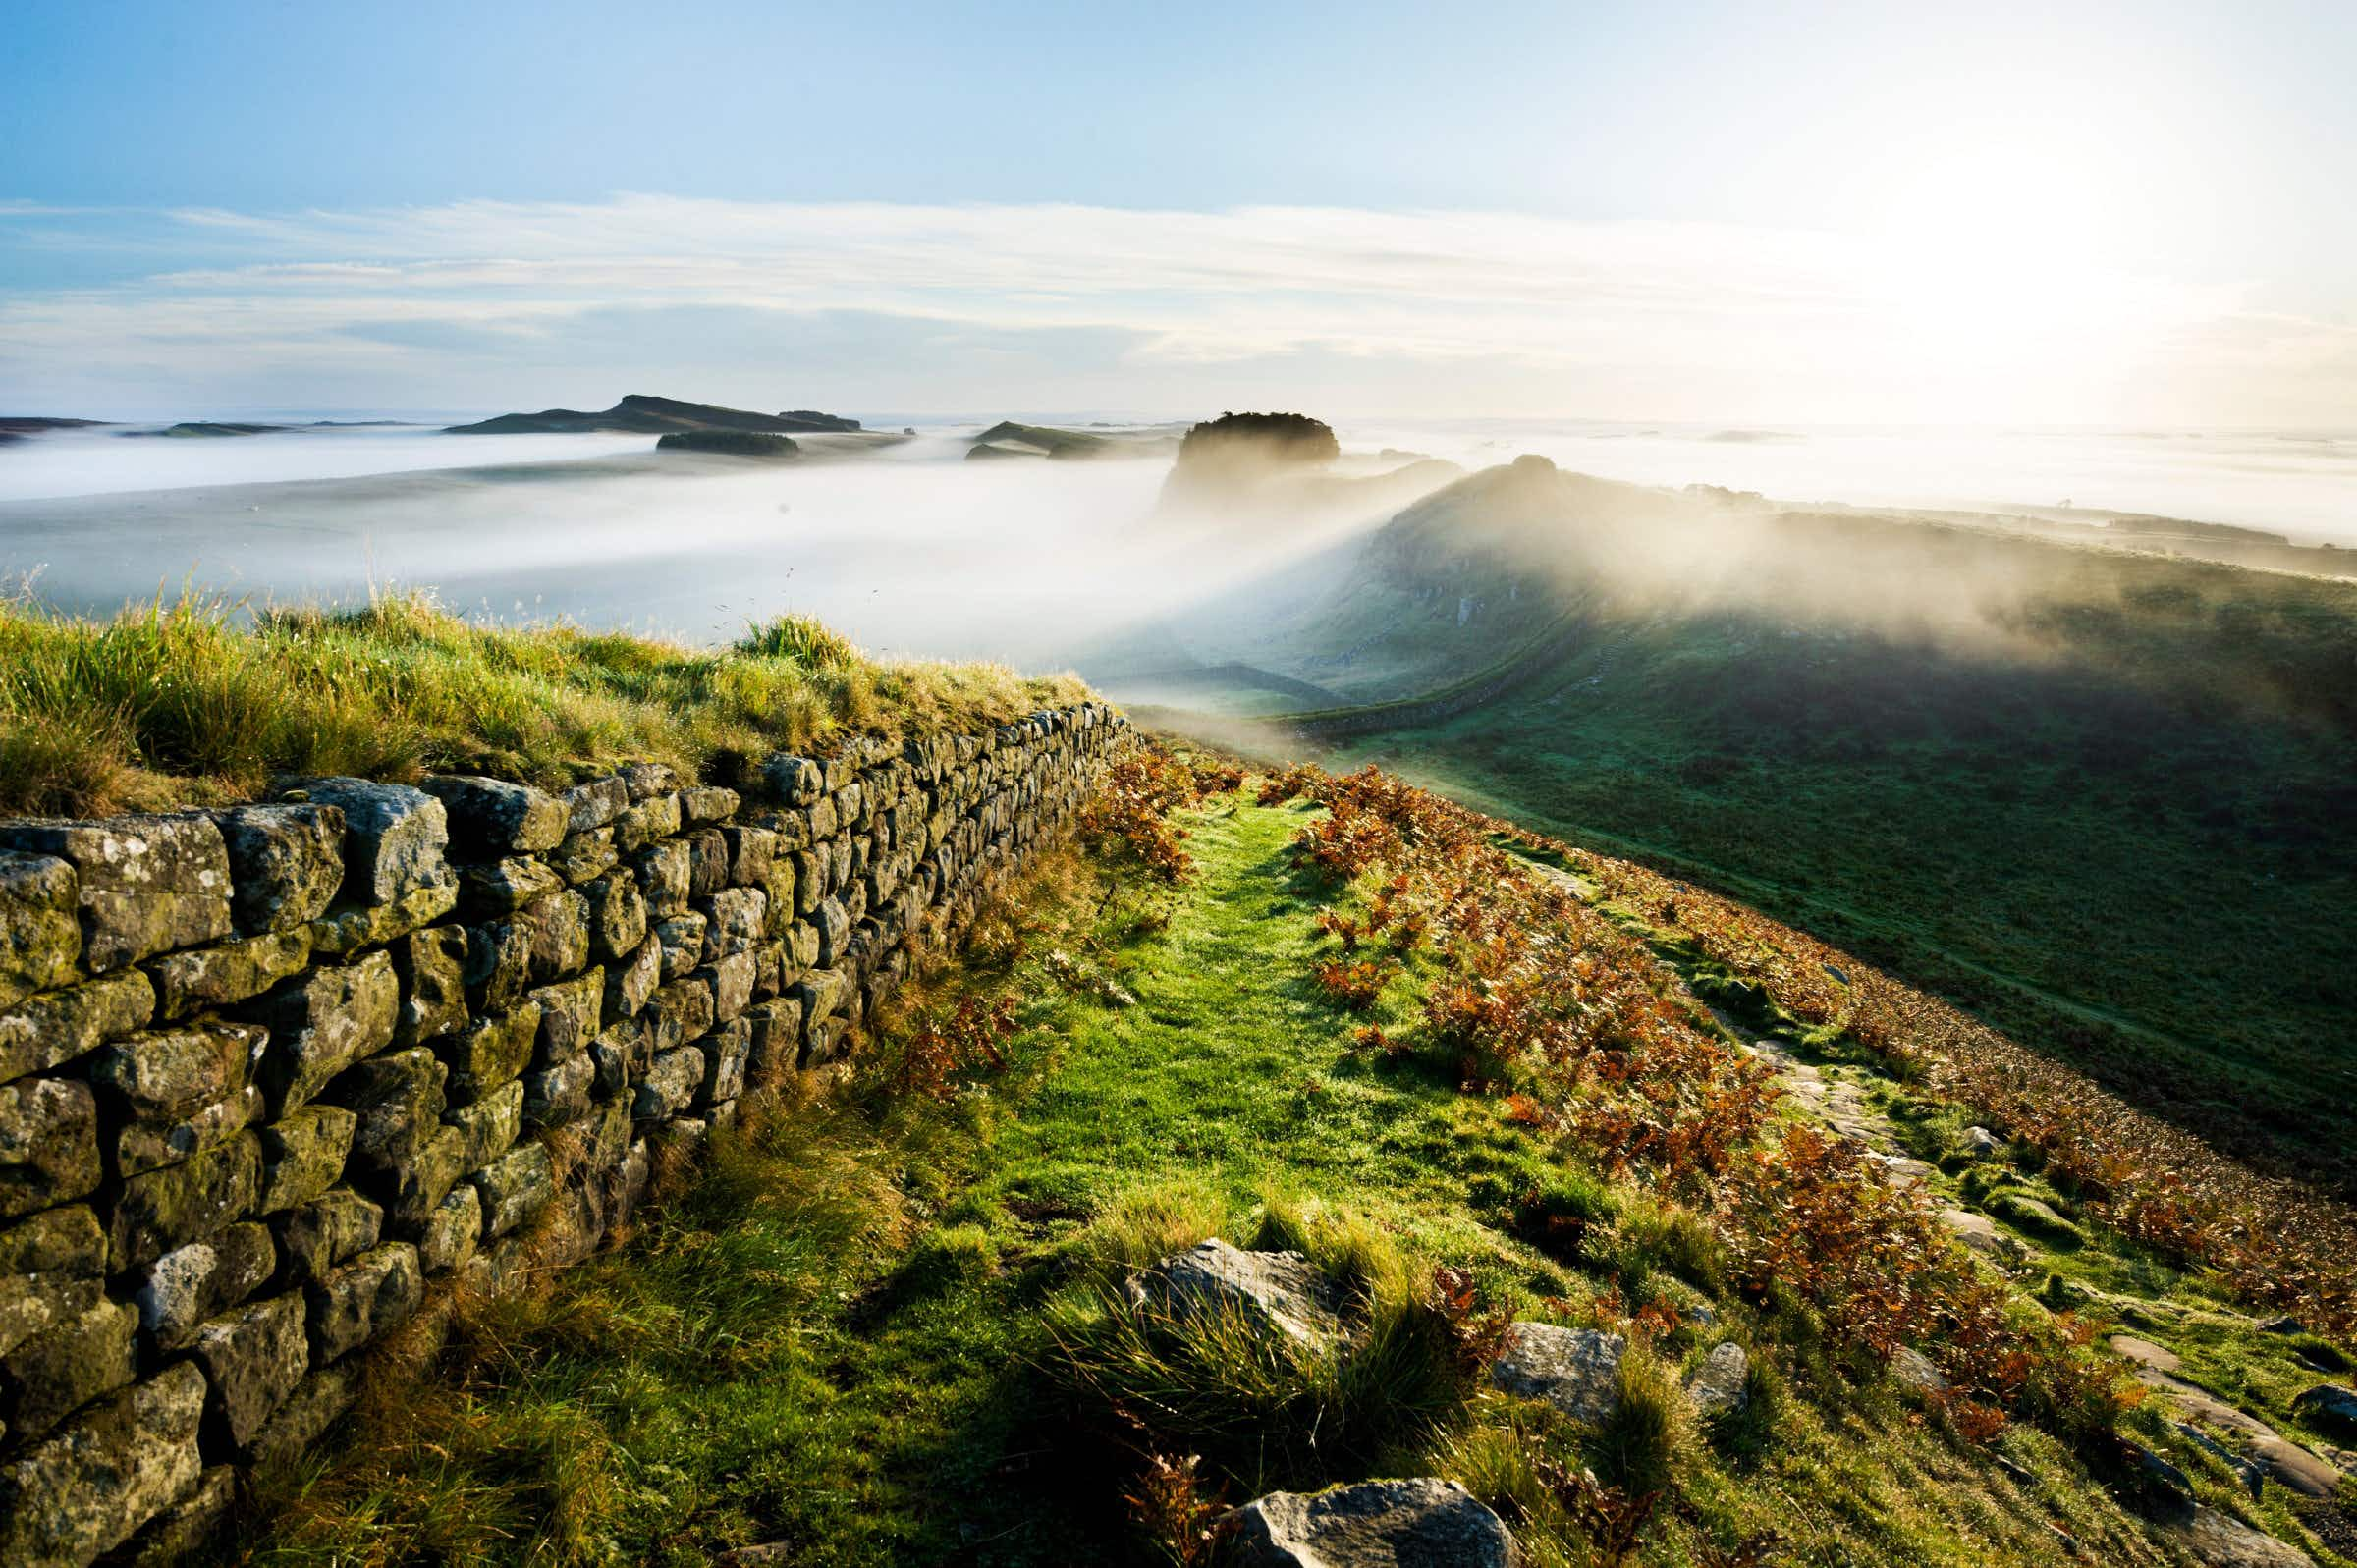 After almost 2000 years, Hadrian's Wall is in need of some repairs